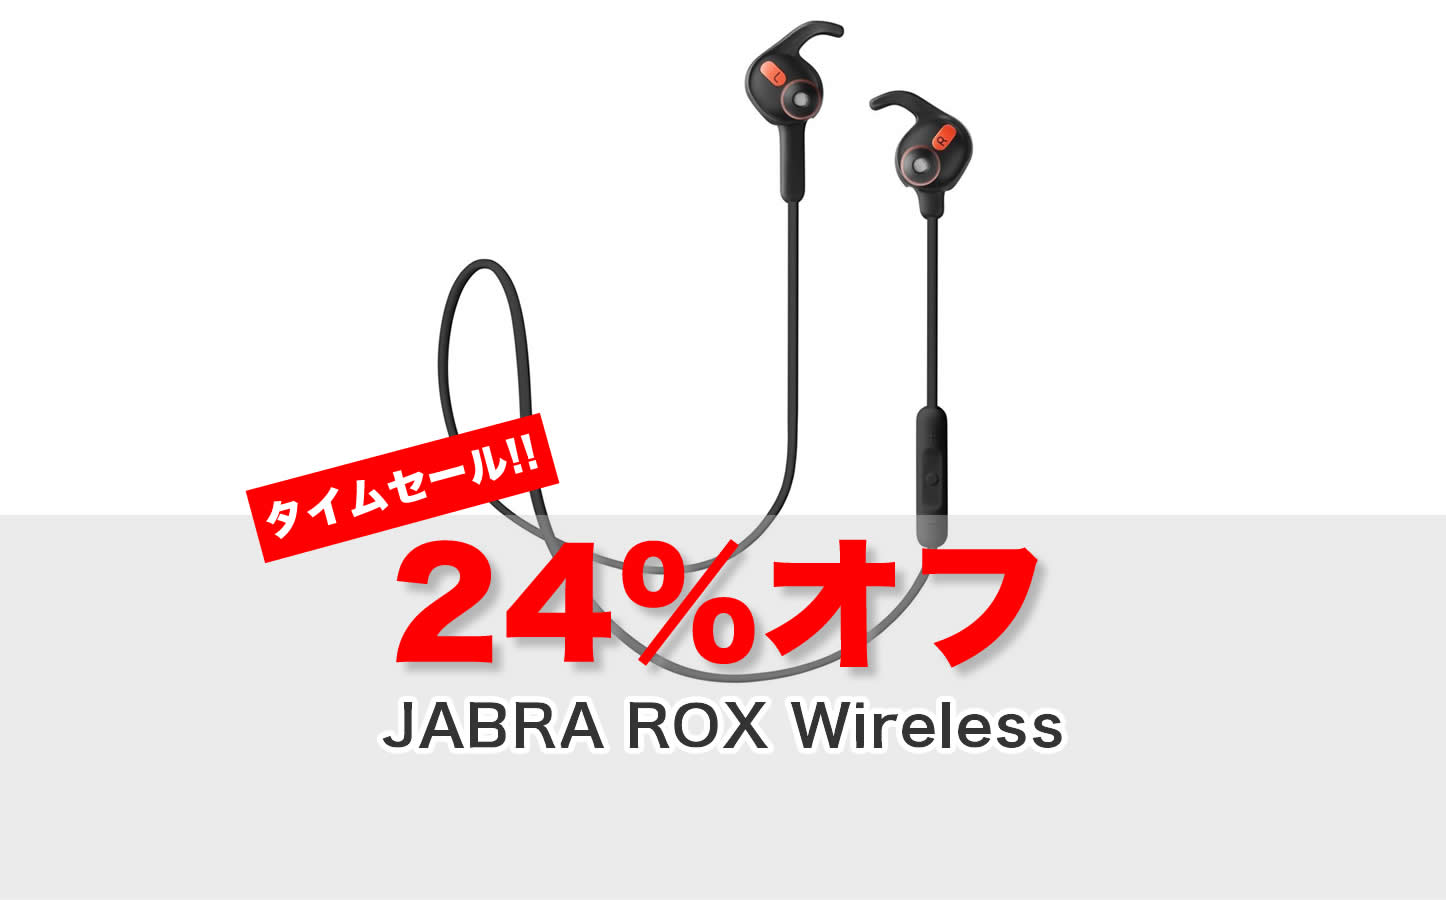 Jabra ROX Wireless Sale